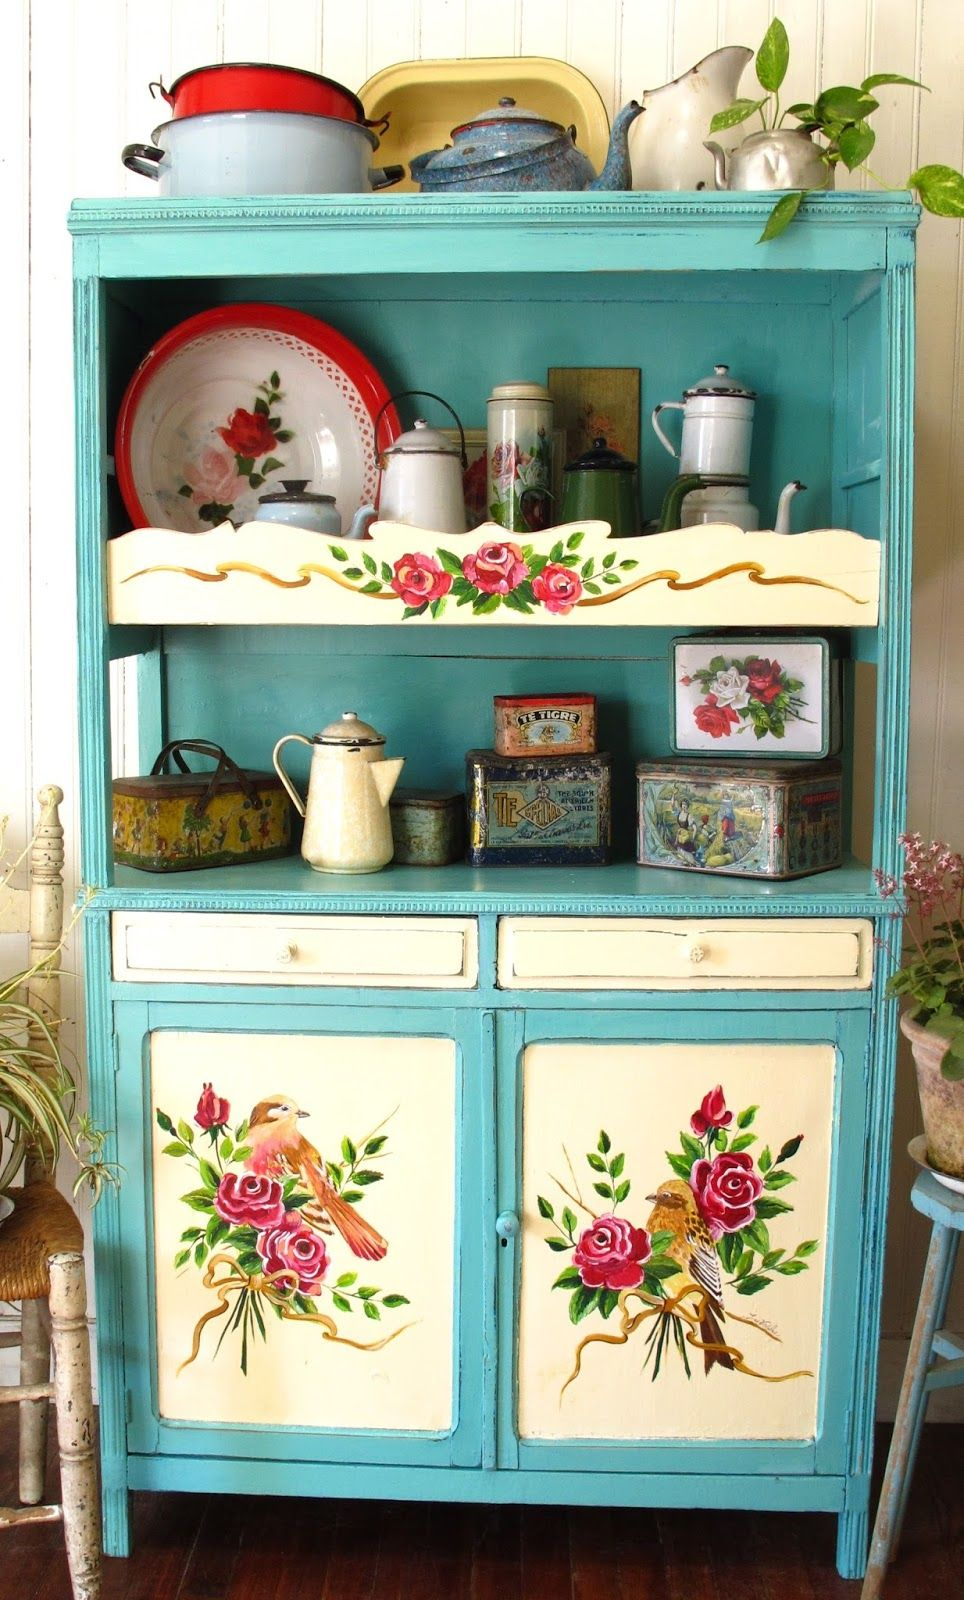 painted kitchen dresser | Kitschy Kitchens | Pinterest | Kitchen ...